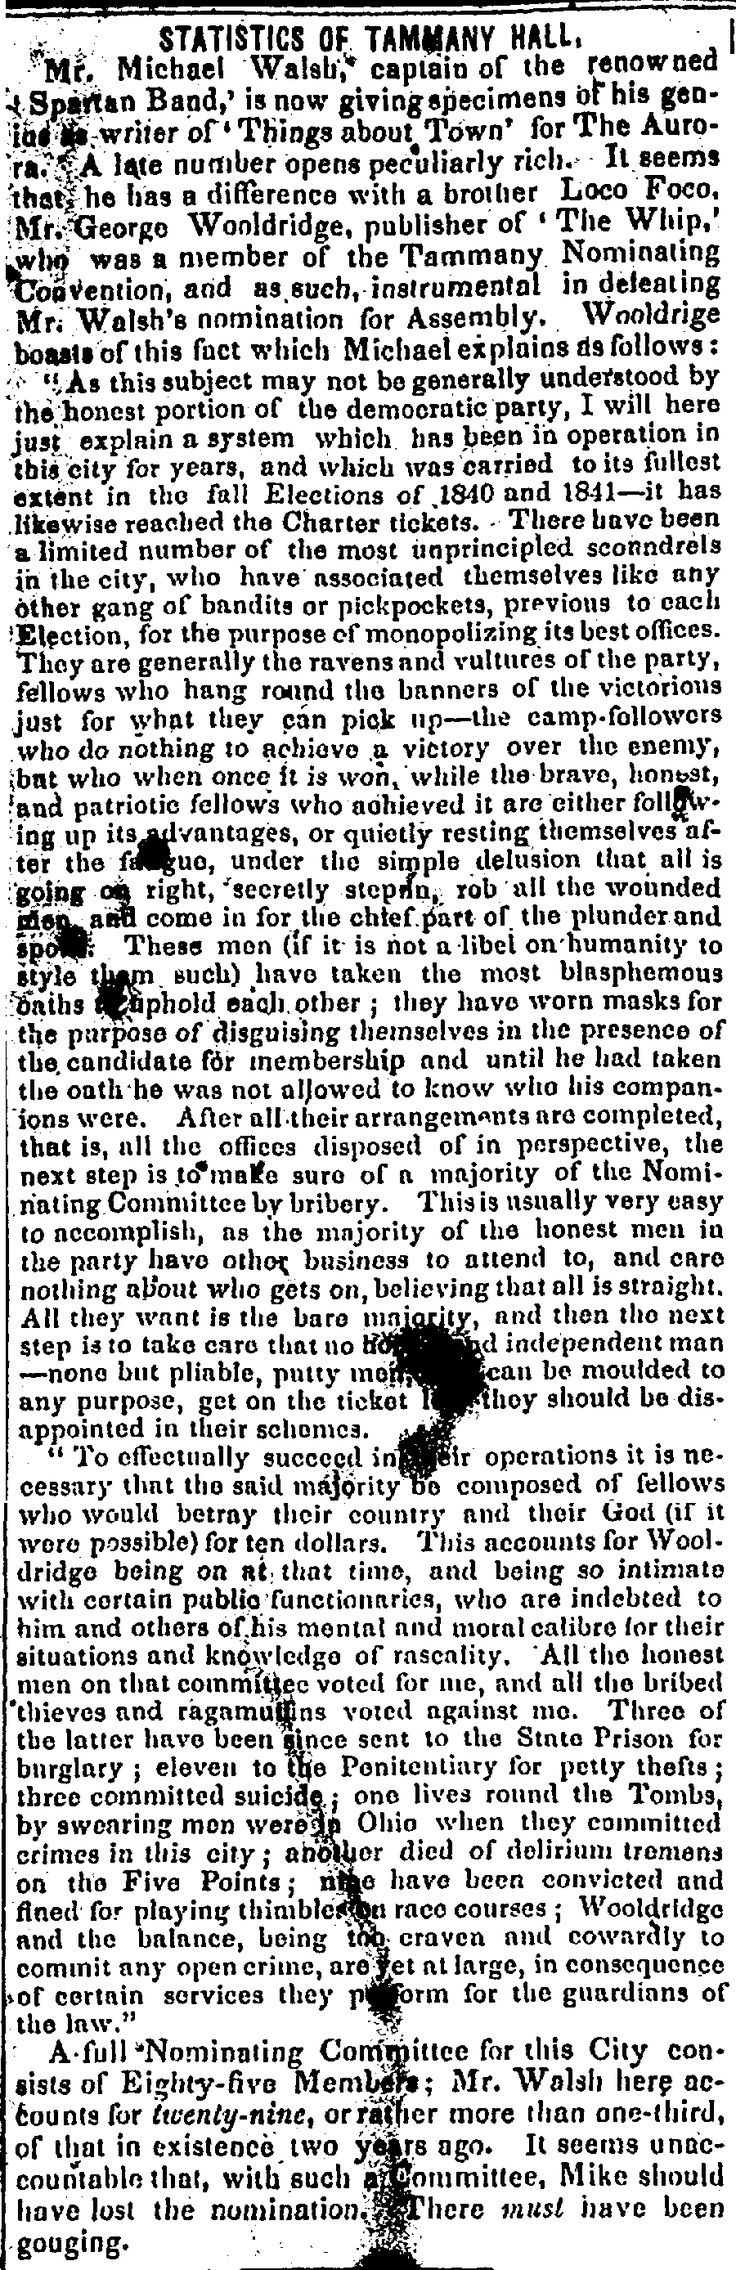 1842. Mike Walsh accuses Democrat rivals (Empire Club?) of being cheats.